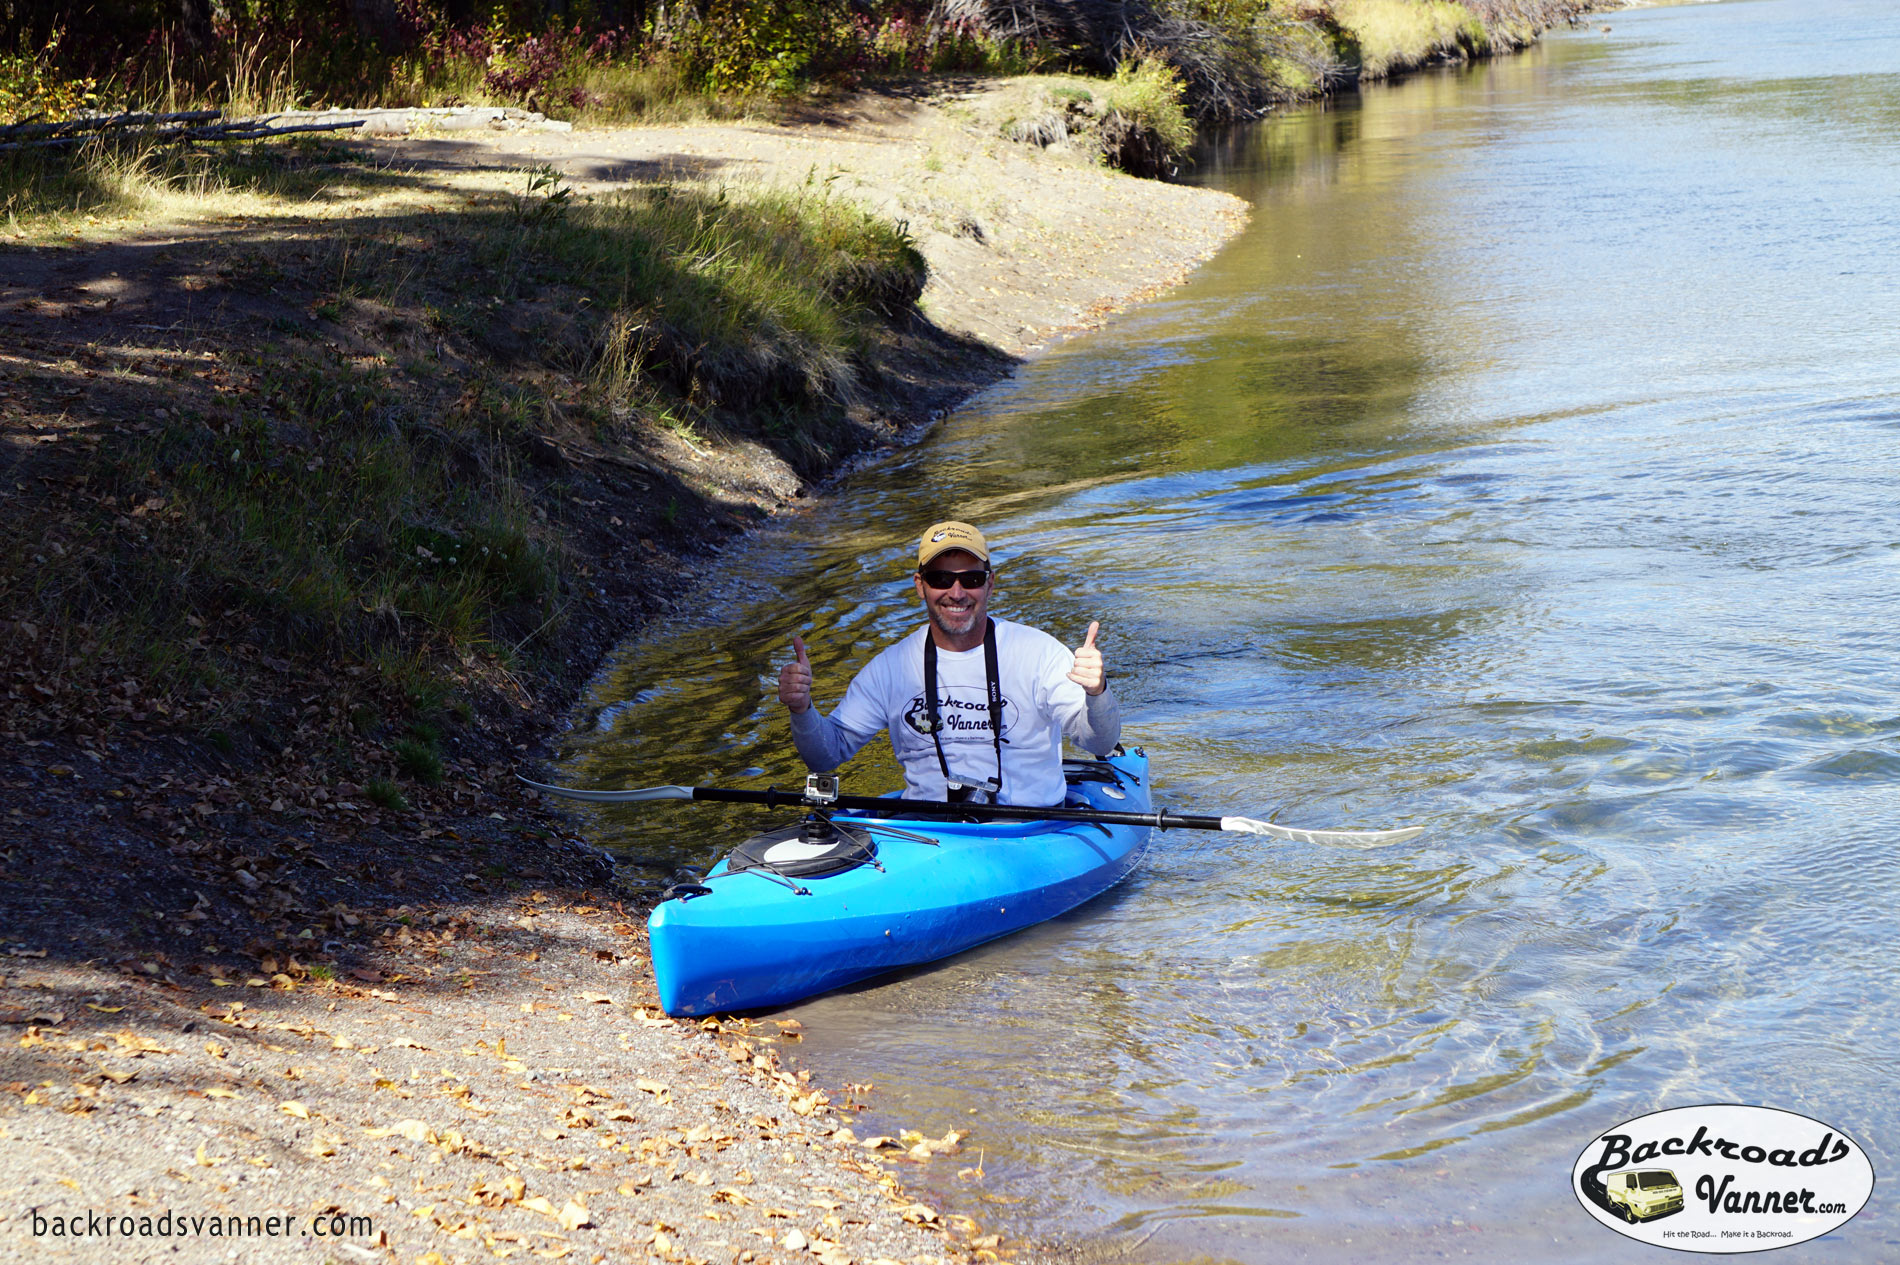 Mike Kayaking The Snake River Near Cattleman's Bridge | Grand Teton National Park | Photo by BackroadsVanner.com